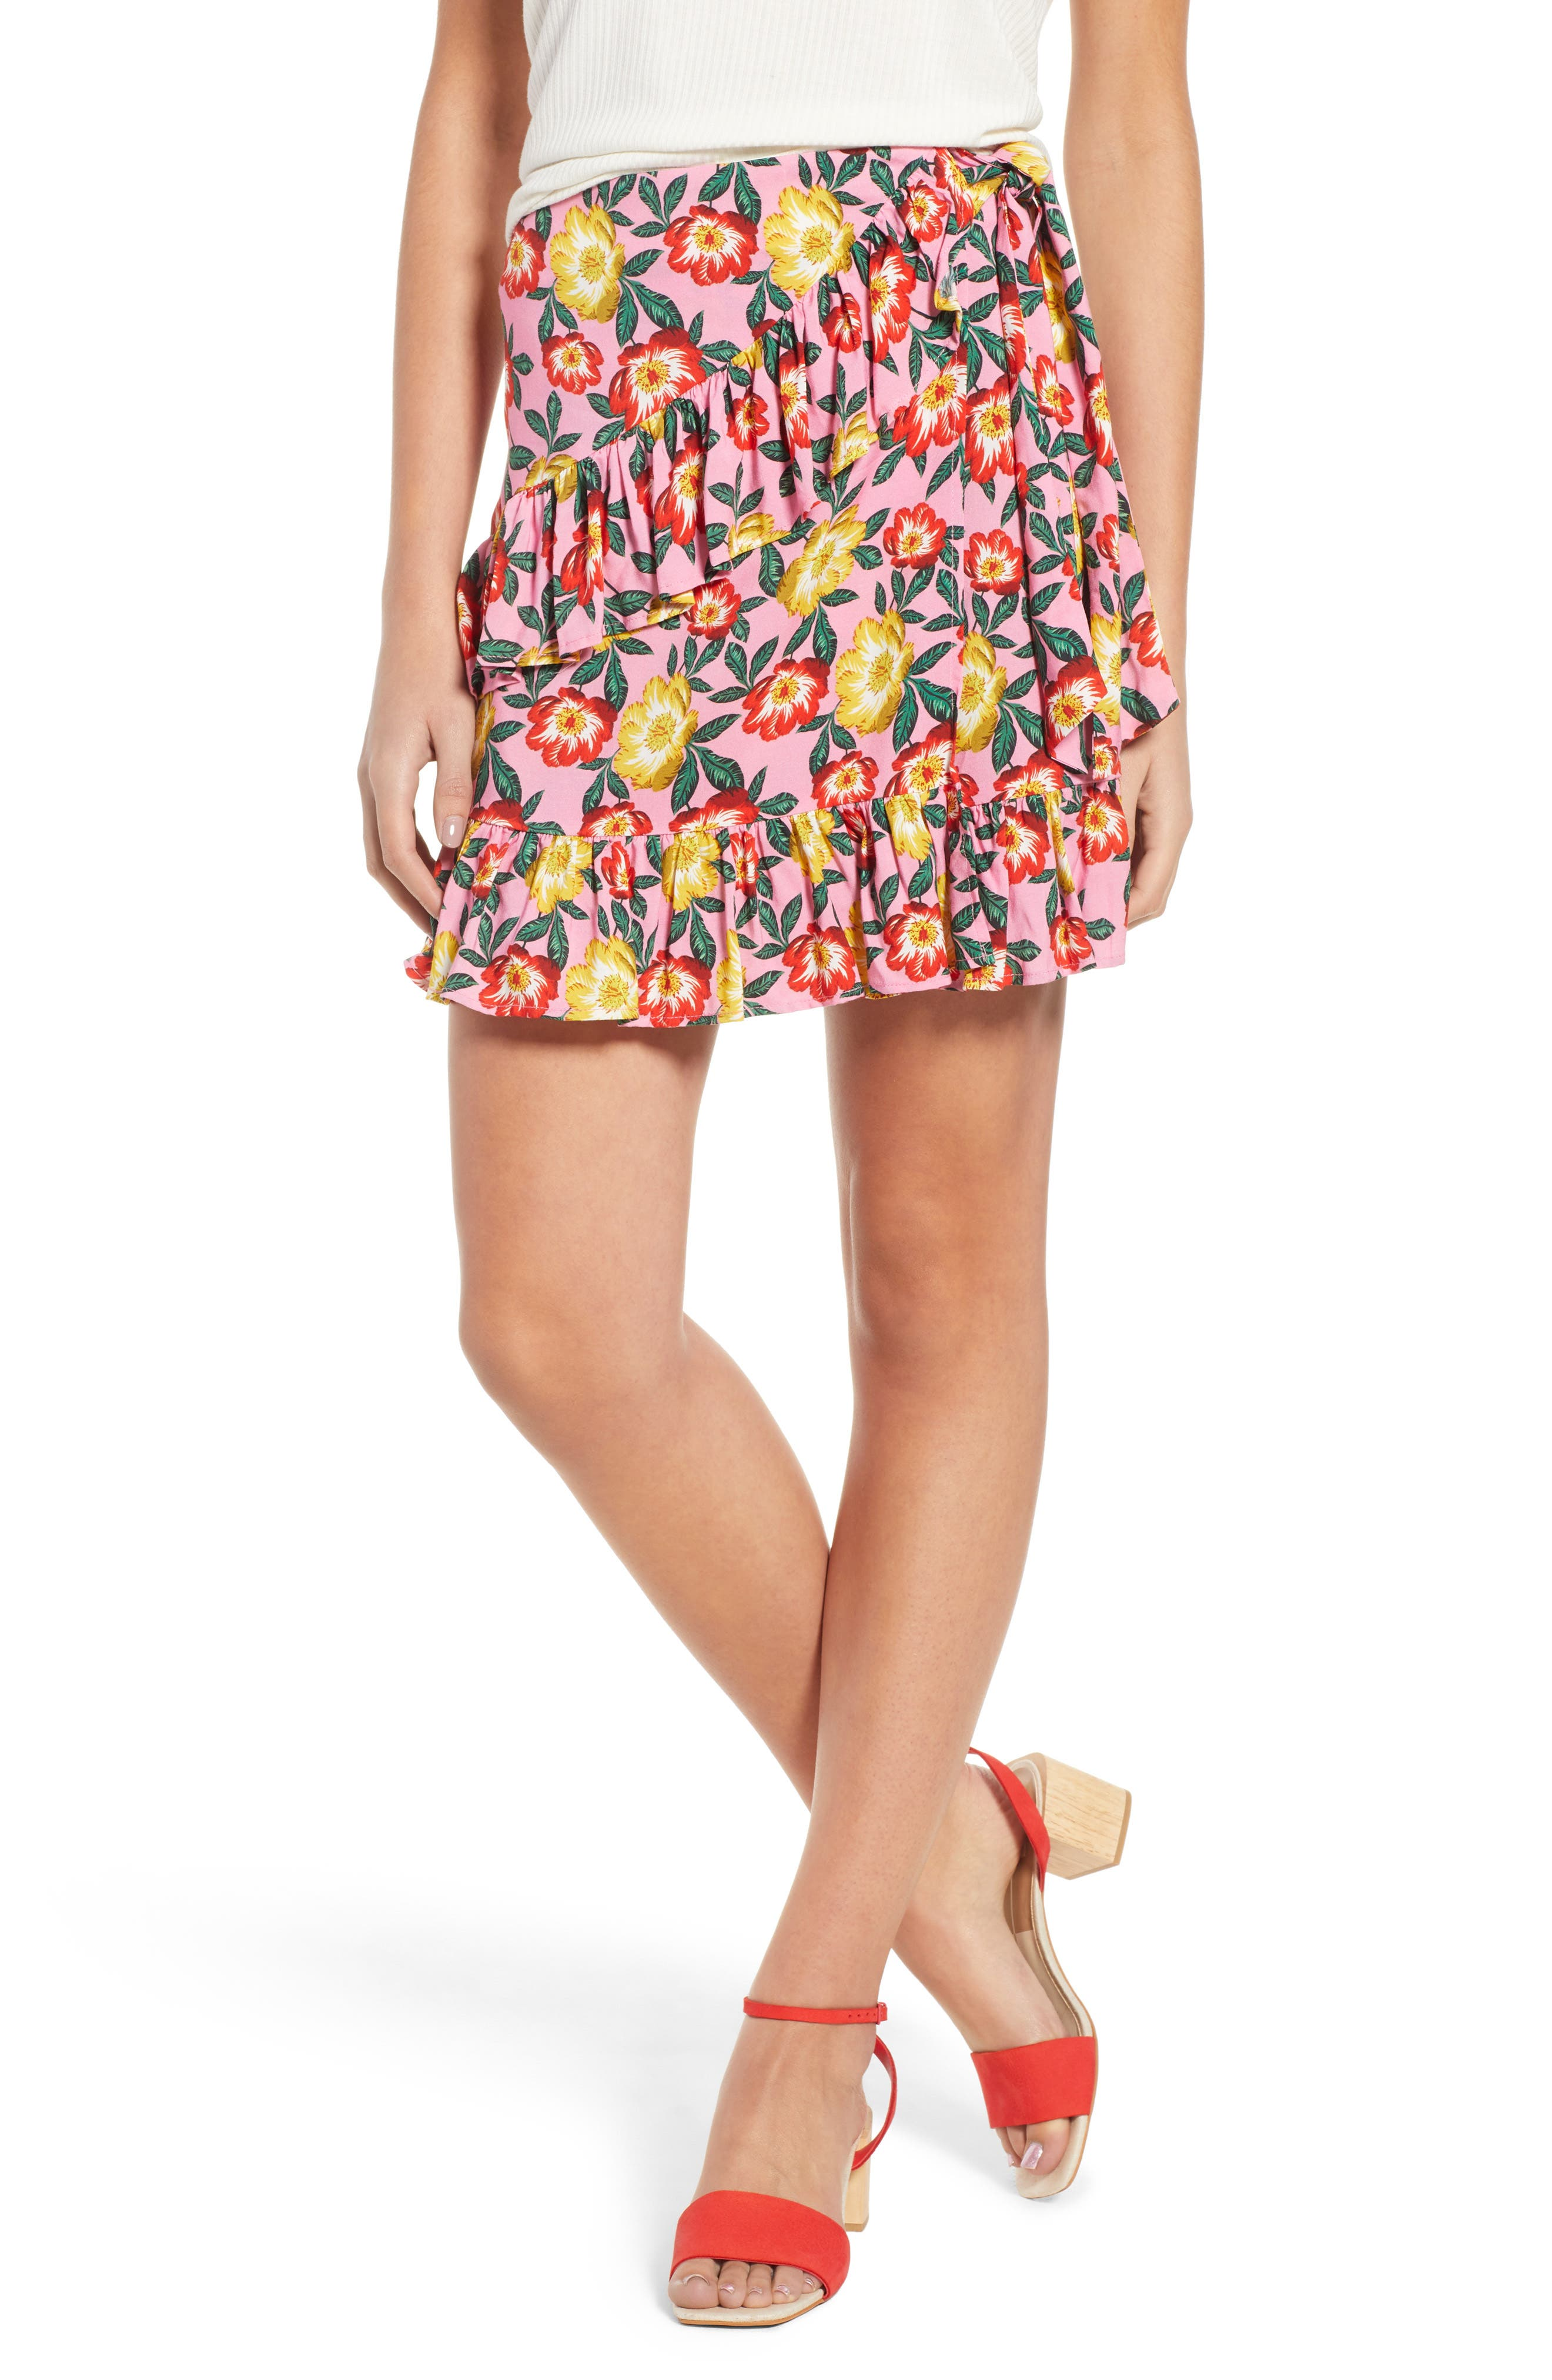 Reunion Floral Print Wrap Skirt,                             Main thumbnail 1, color,                             Small Blossom Roselle